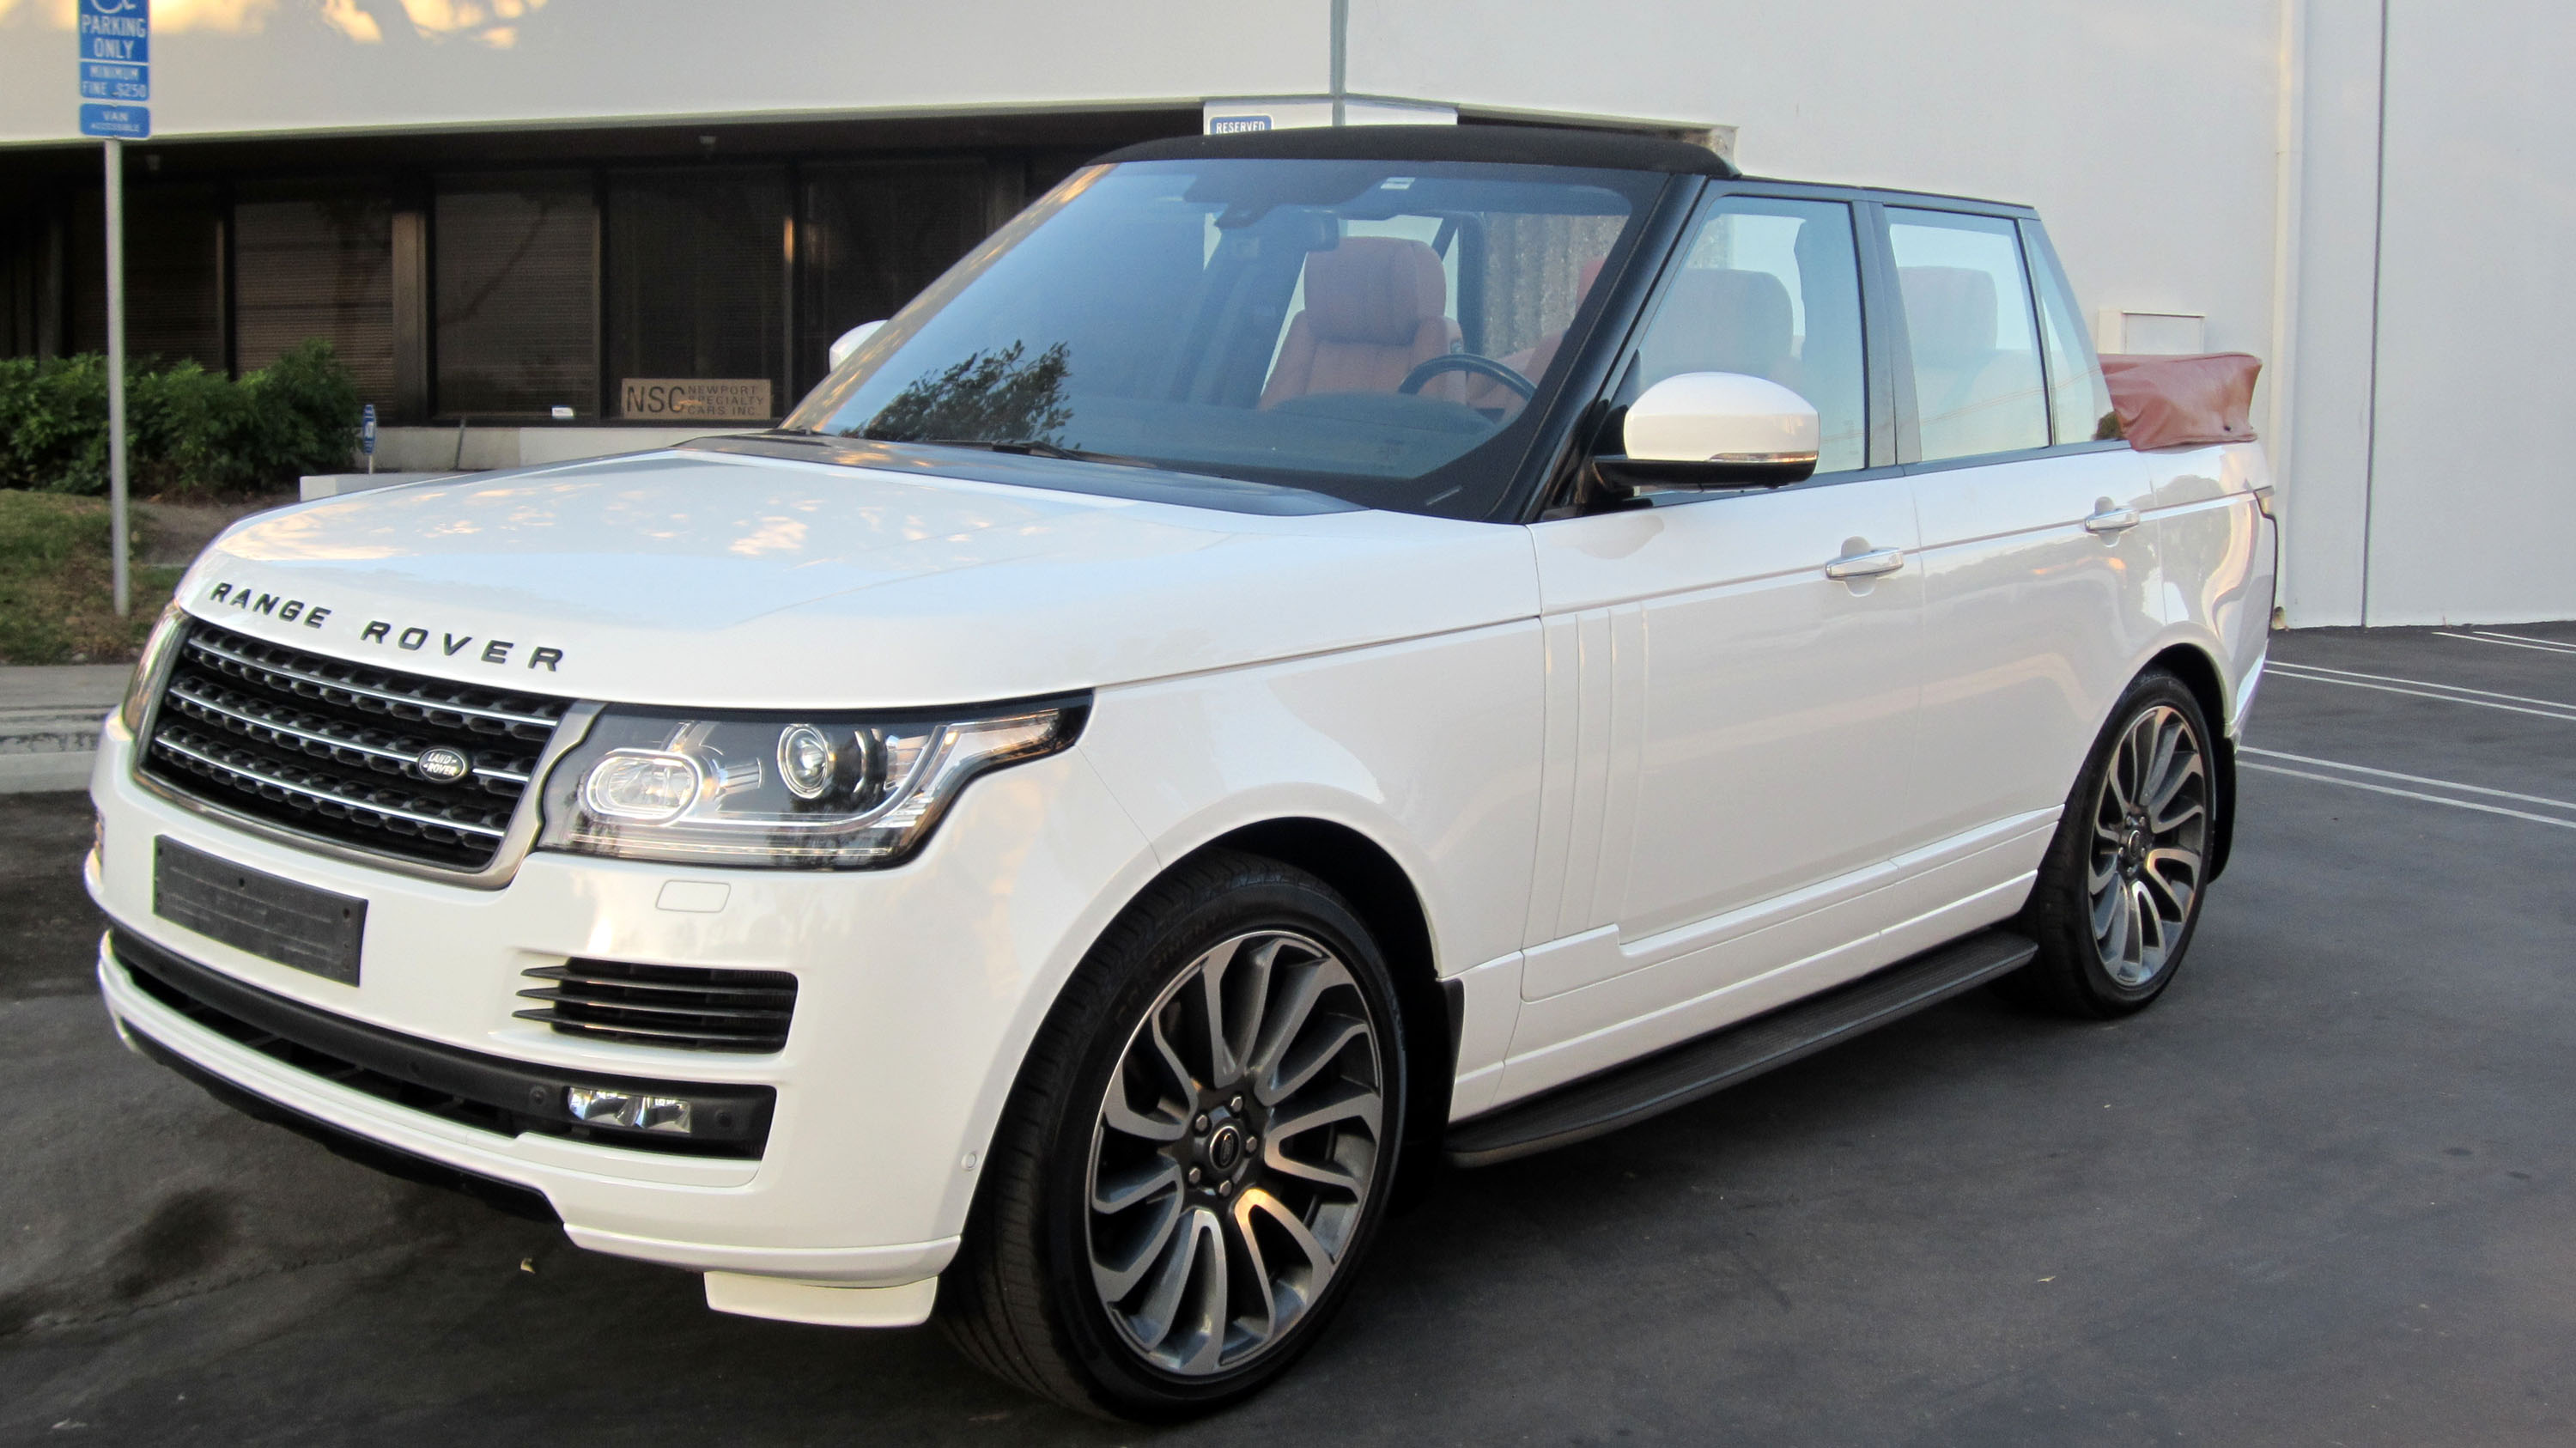 range rover convertible mega. Black Bedroom Furniture Sets. Home Design Ideas